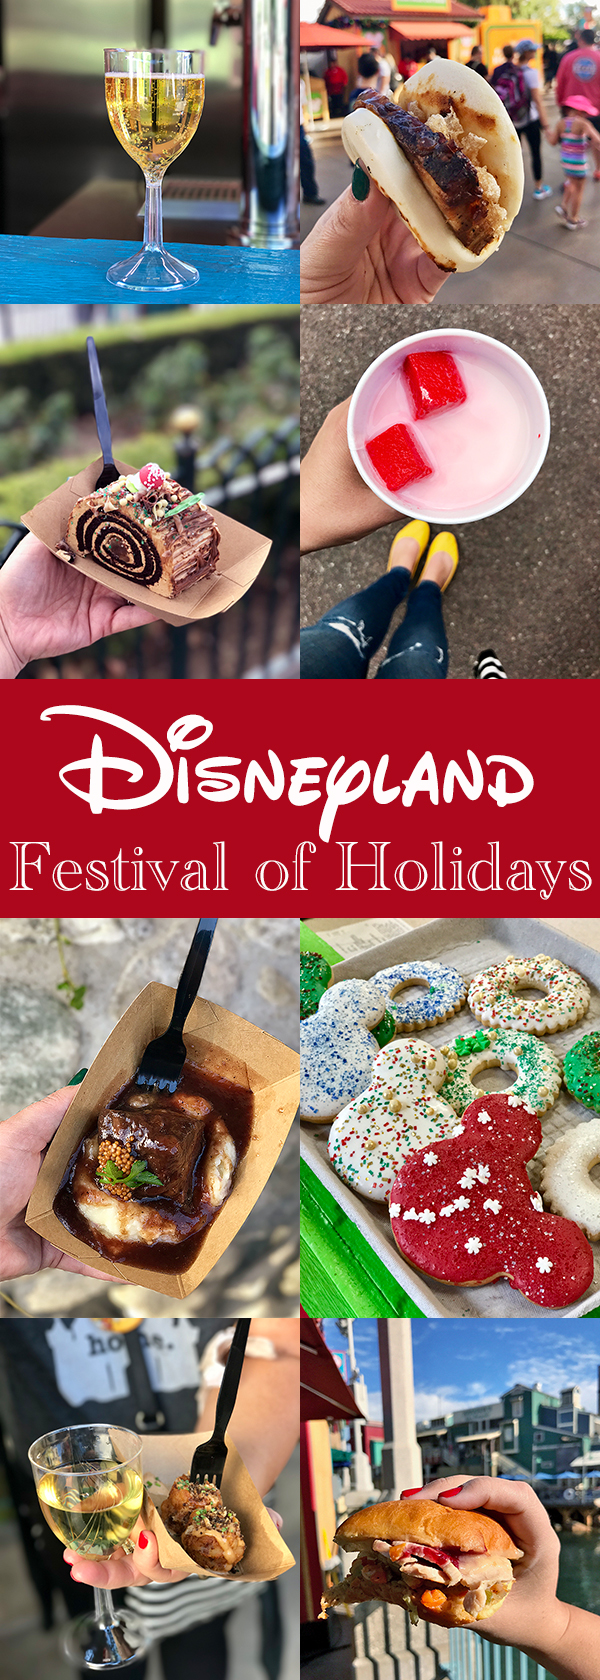 Disneyland Festival of Holidays - best food and drinks and Disneyland's new Festival of Holidays at California Adventure